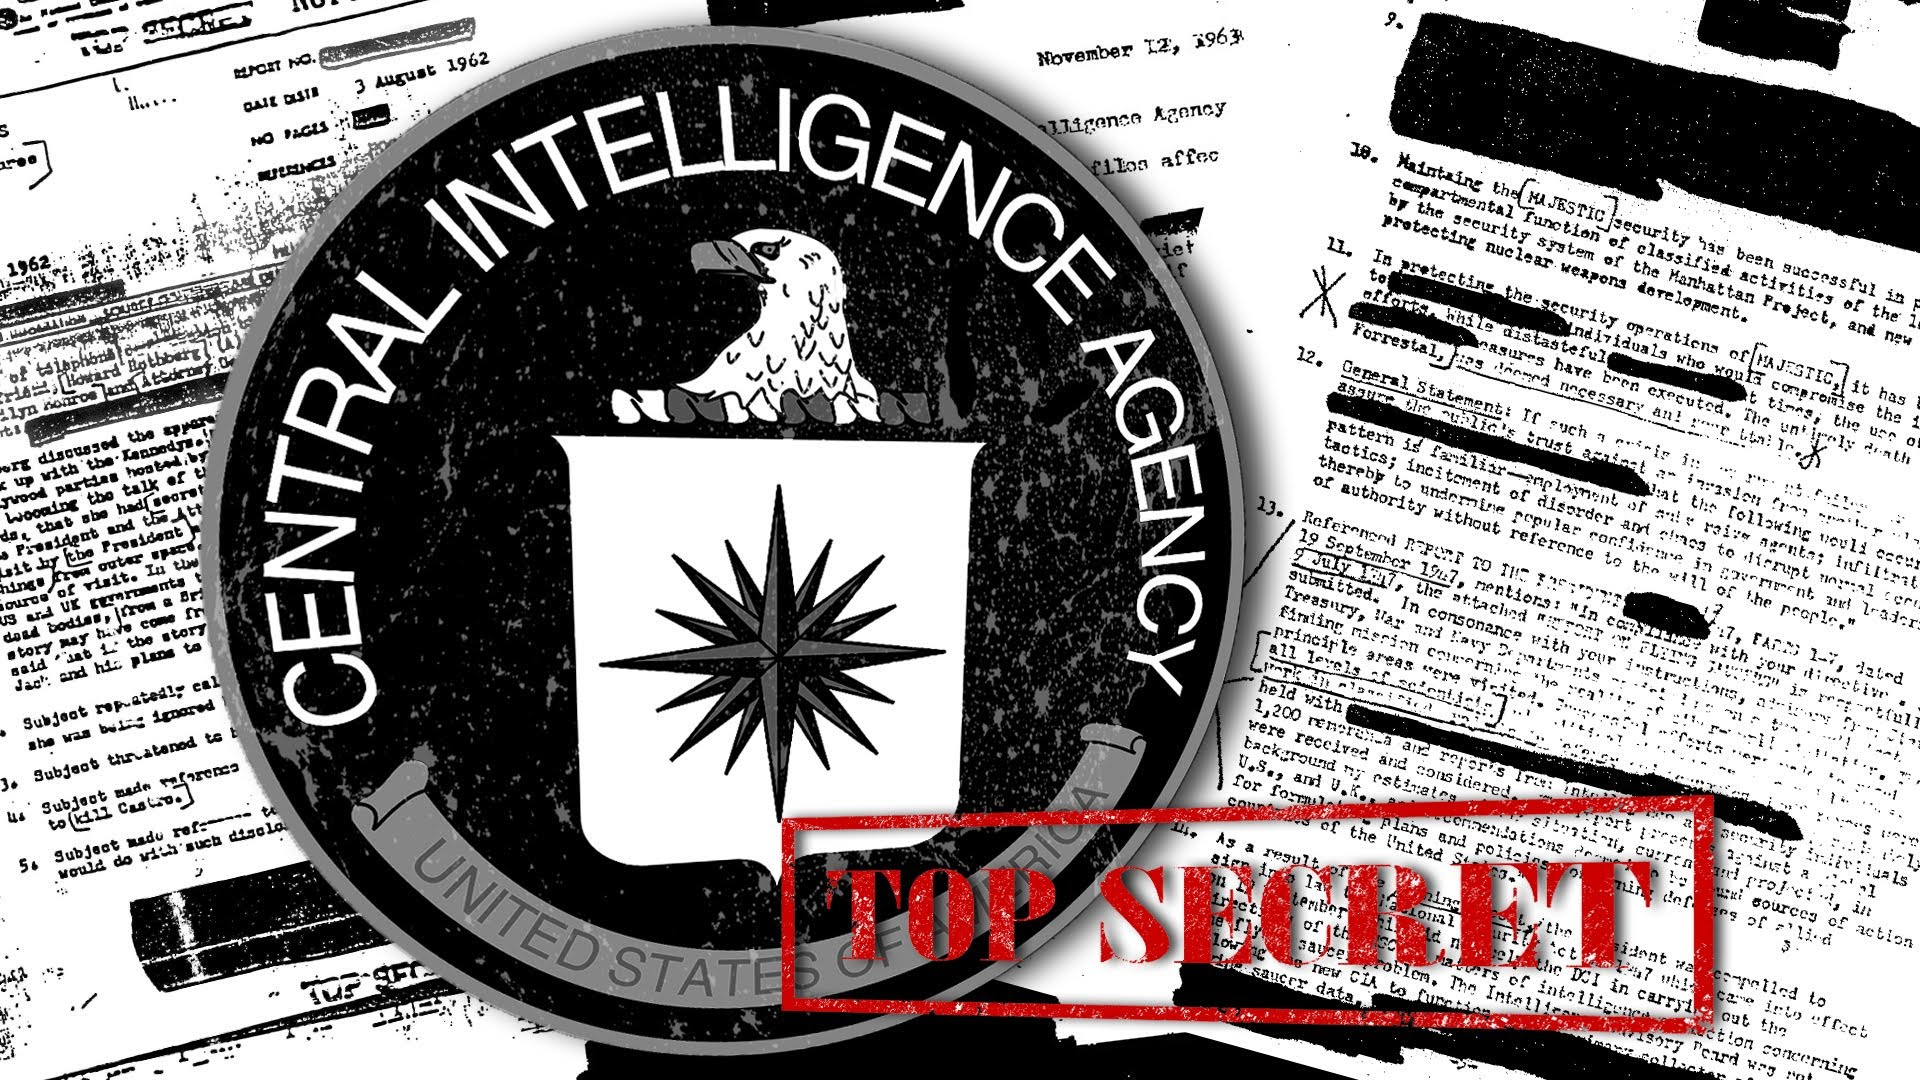 CIA MKULTRA / Mind Control Collection - The Black Vault